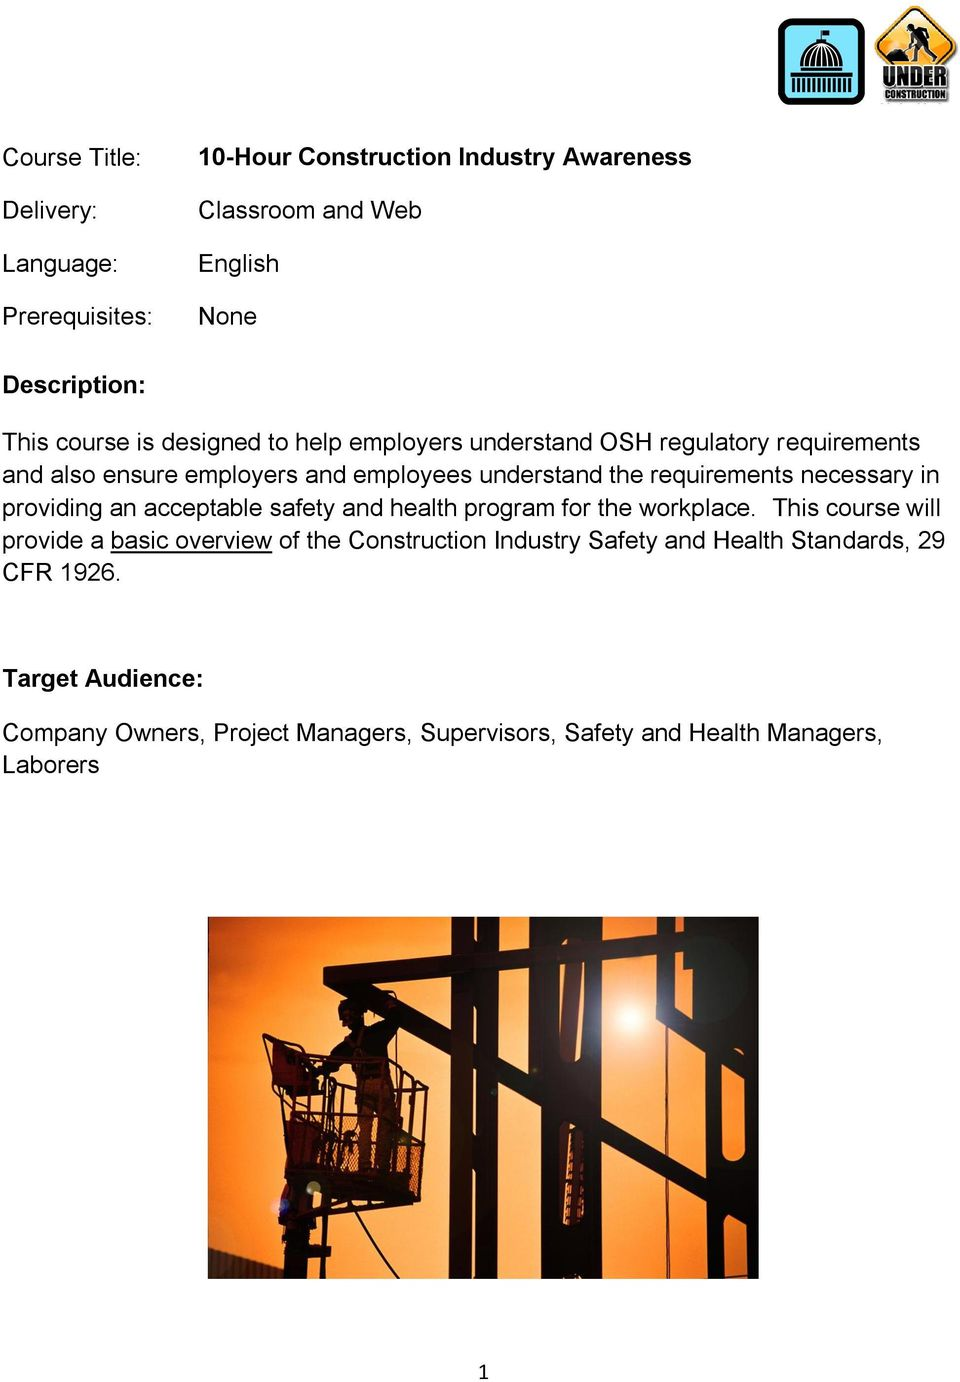 CDC - The National Institute for Occupational Safety and Health (NIOSH)